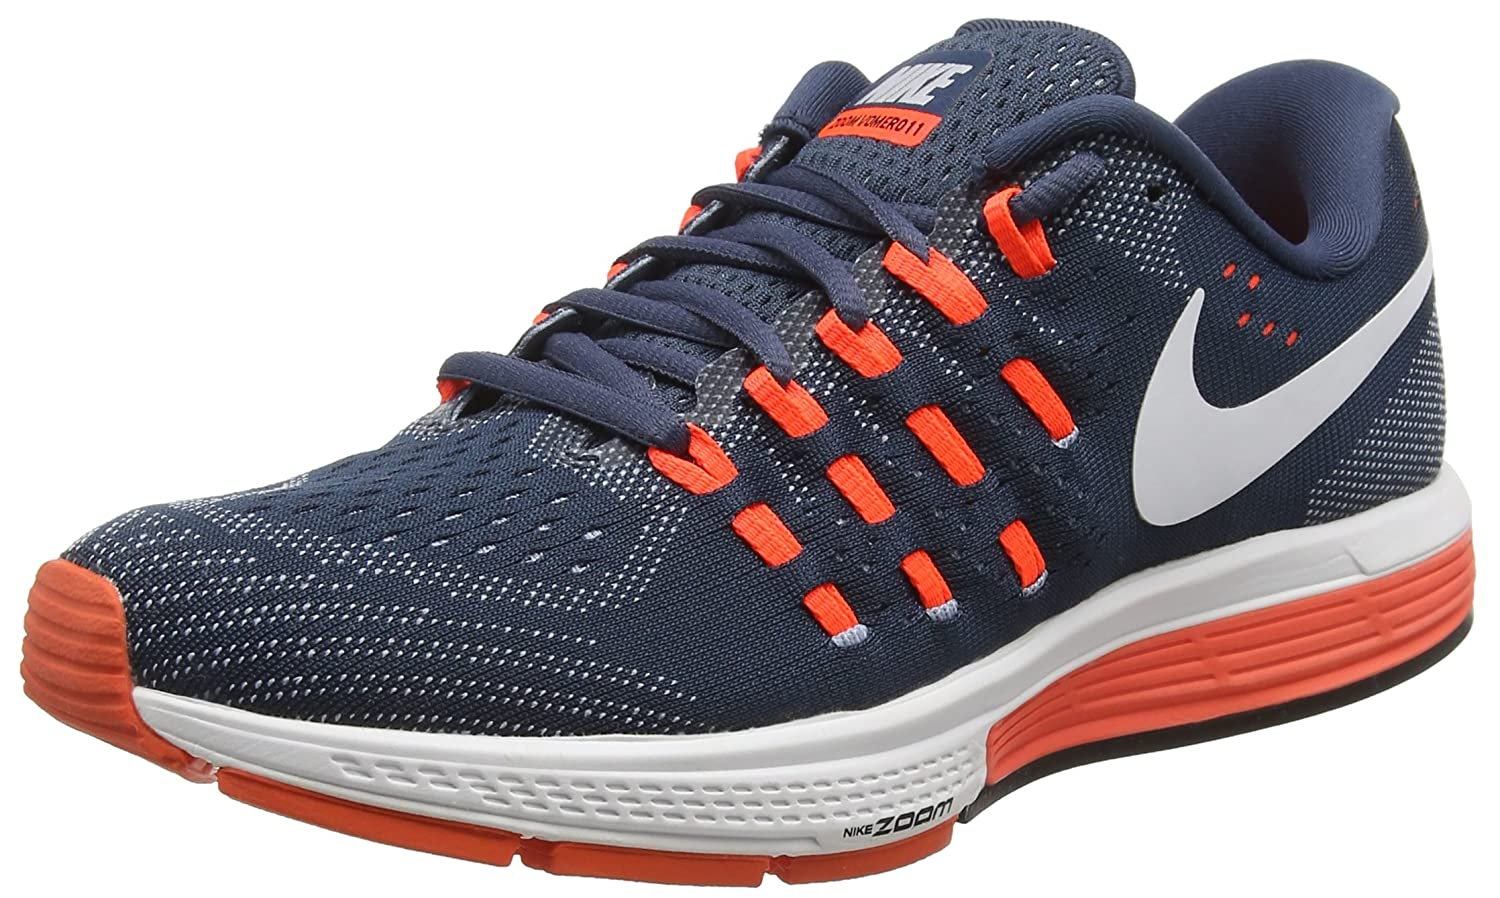 Nike Men's Air Zoom Vomero 11 Running Shoes B01CEJ3ITE 12 D(M) US|Squadron Blue/Blue Grey/Total Crimson/White